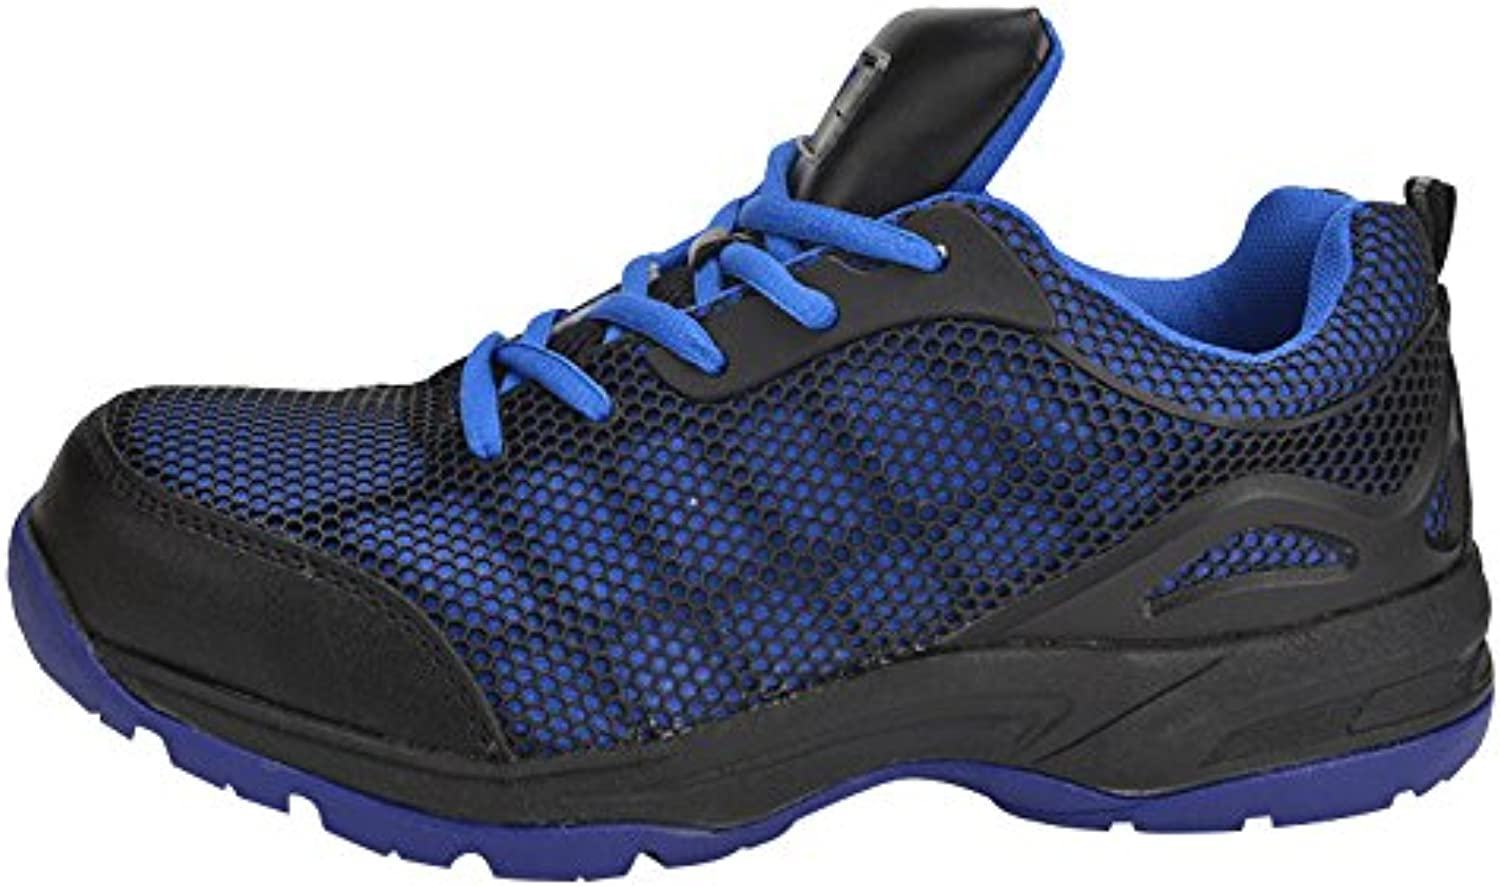 Optimal Women's Safety shoes Work shoes Predect Toe shoes